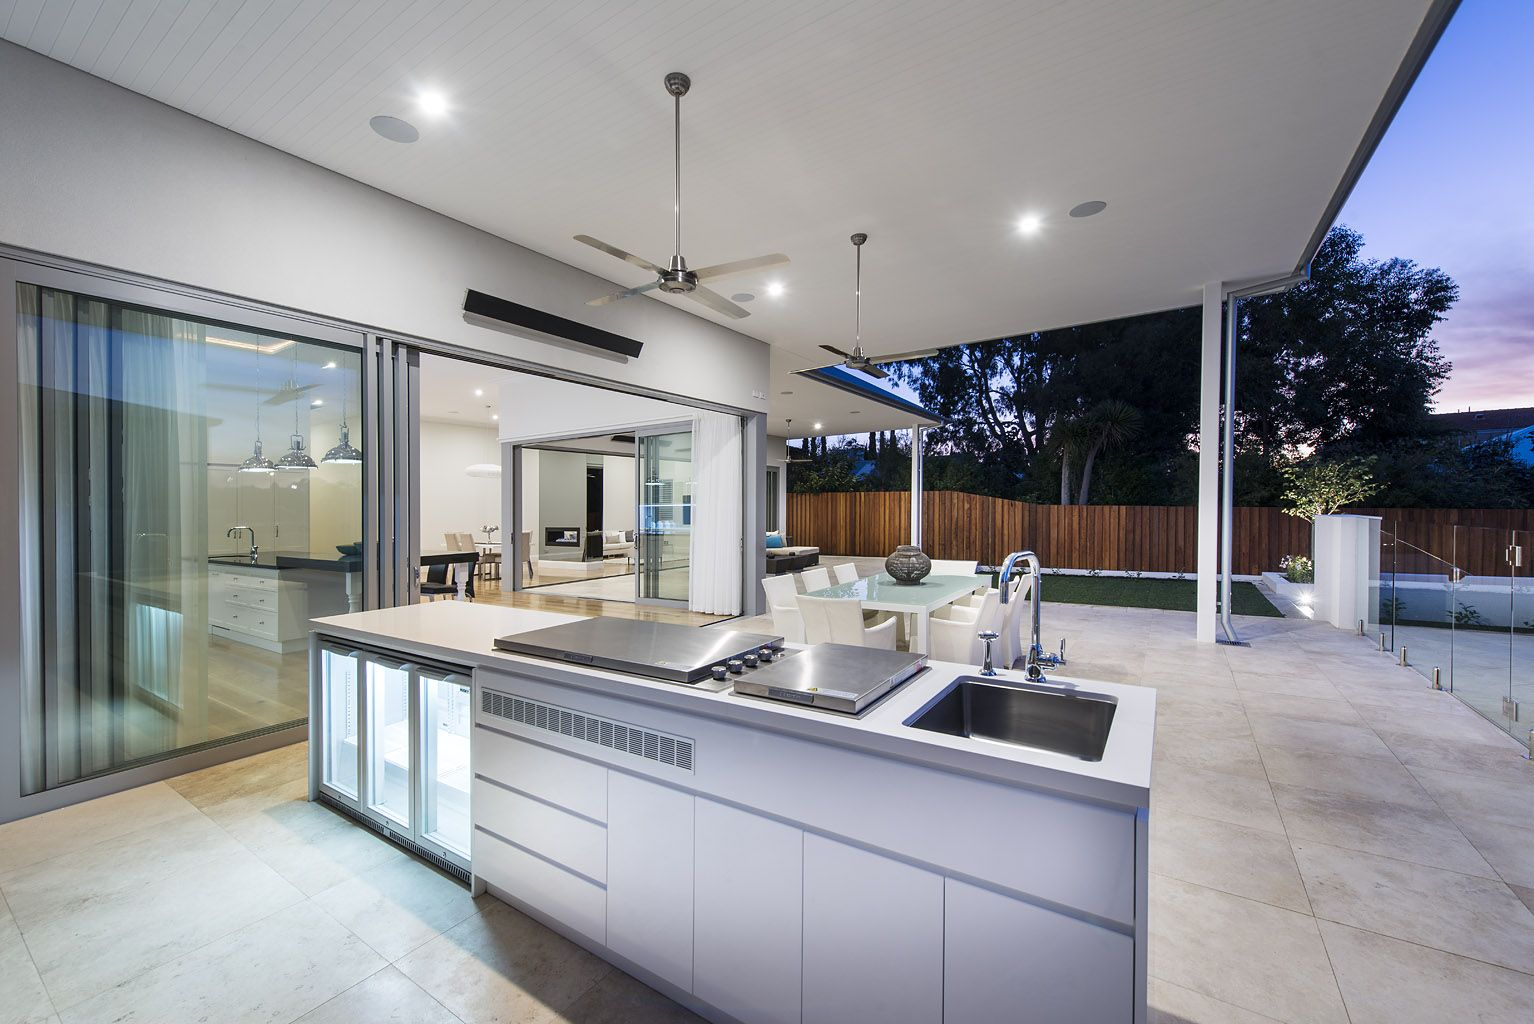 Cambuild Custom Home Builder Perth, Western Australia